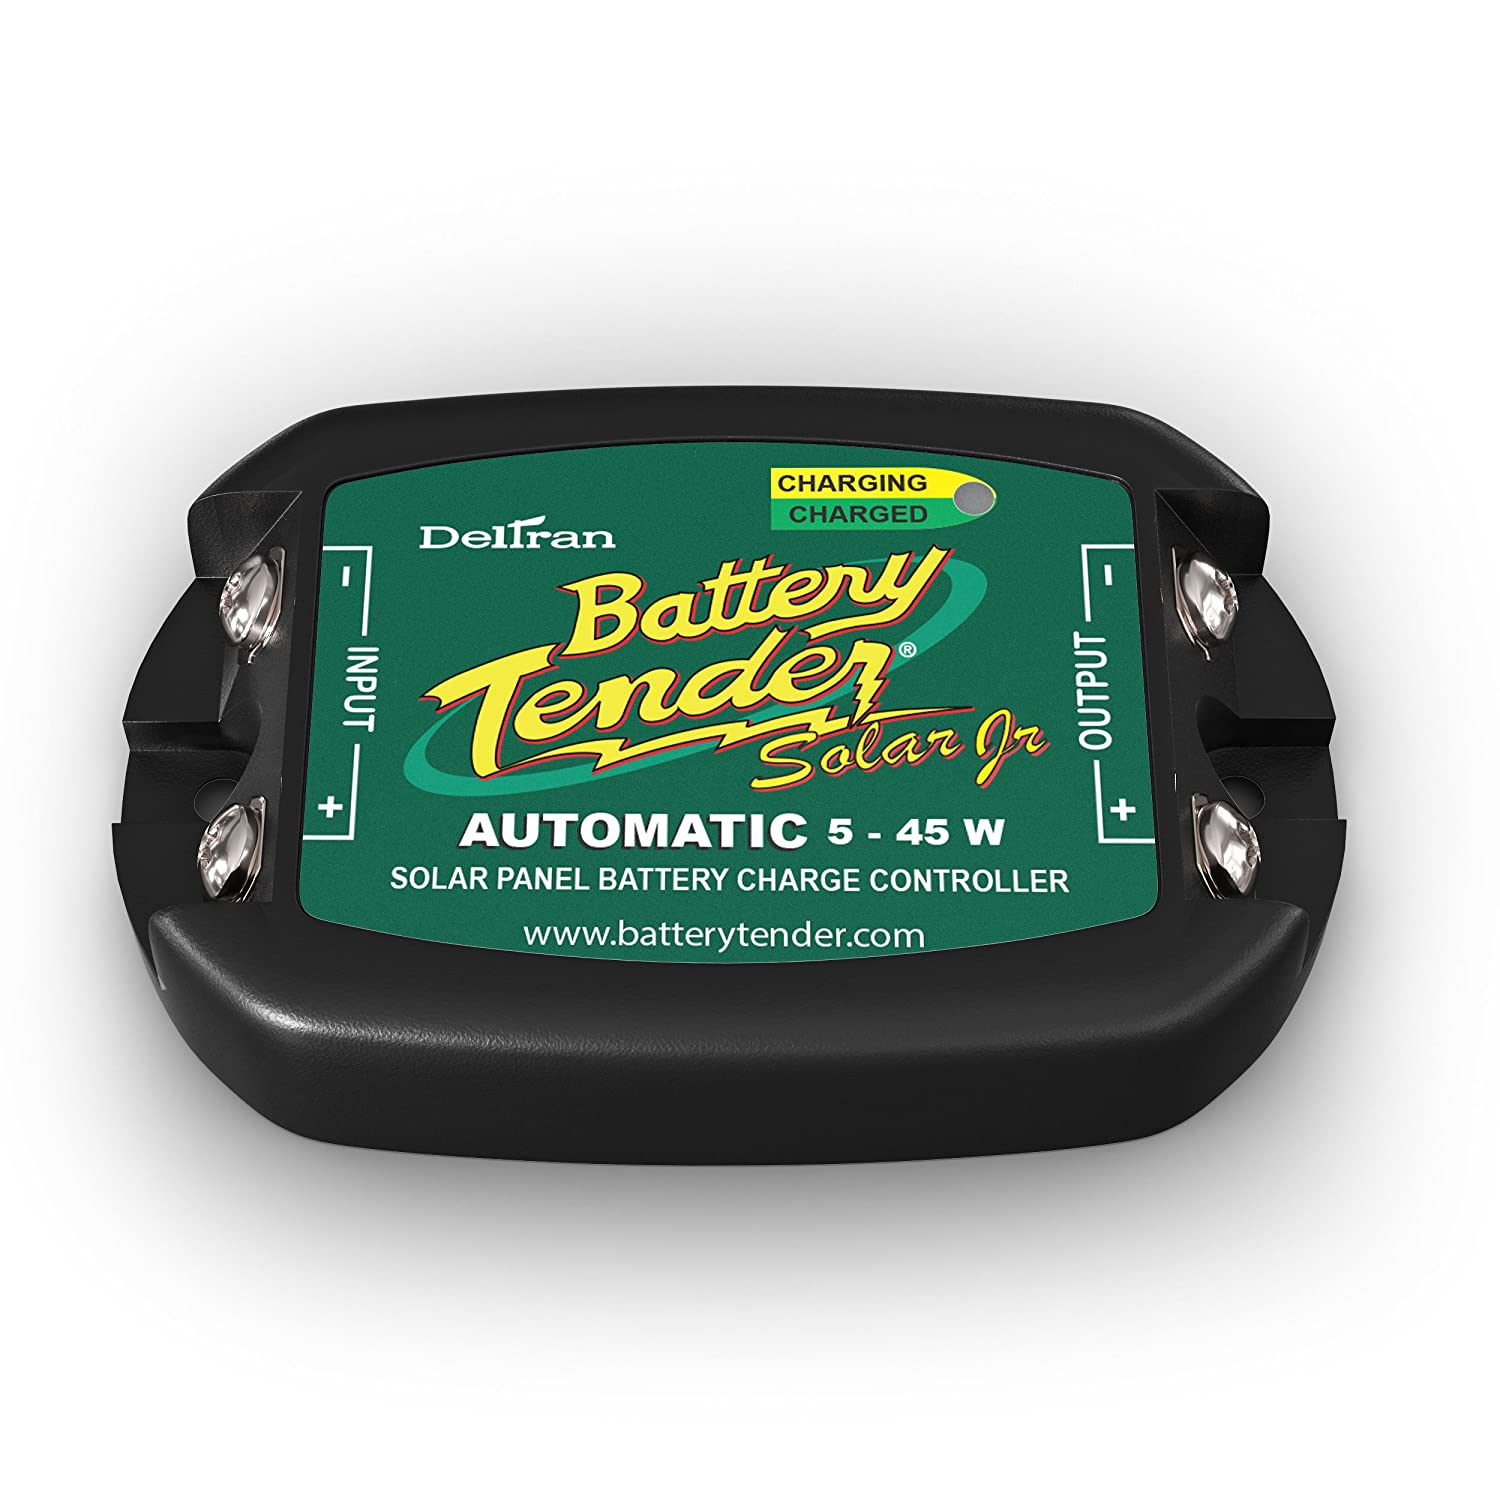 Battery Tender 021 1162 Solar Panel Charger Controller Visit Page Of Circuit Batterytender Automotive